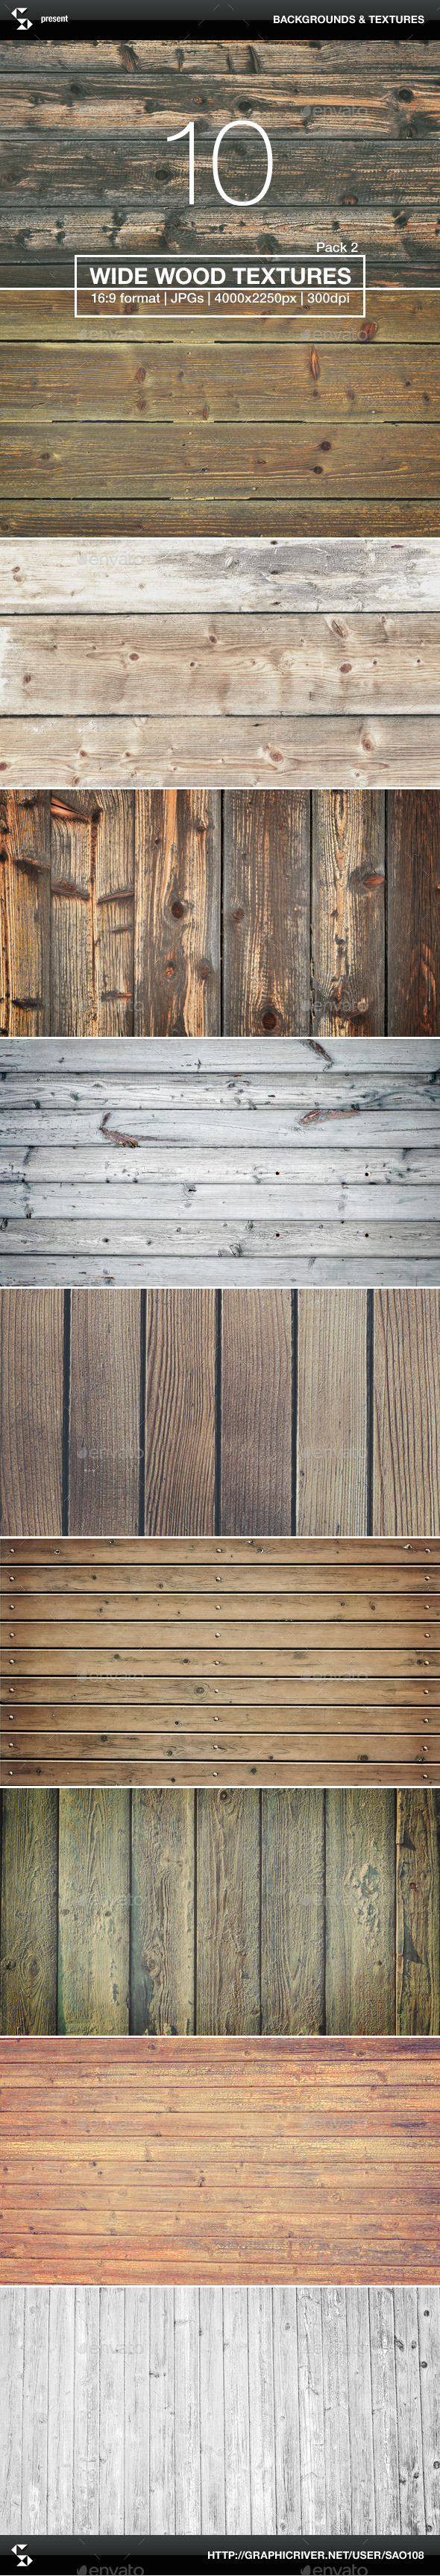 10 Wide Wood Textures 2 - Wood Backgrounds - Wood Textures